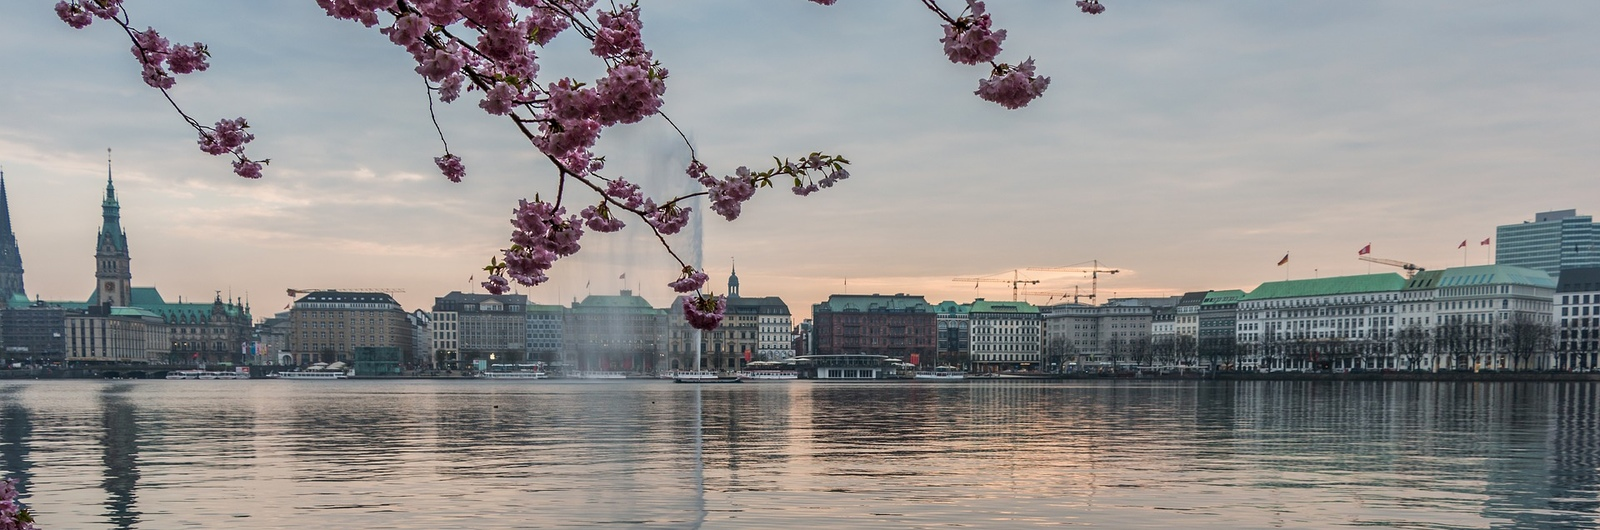 hamburg city header